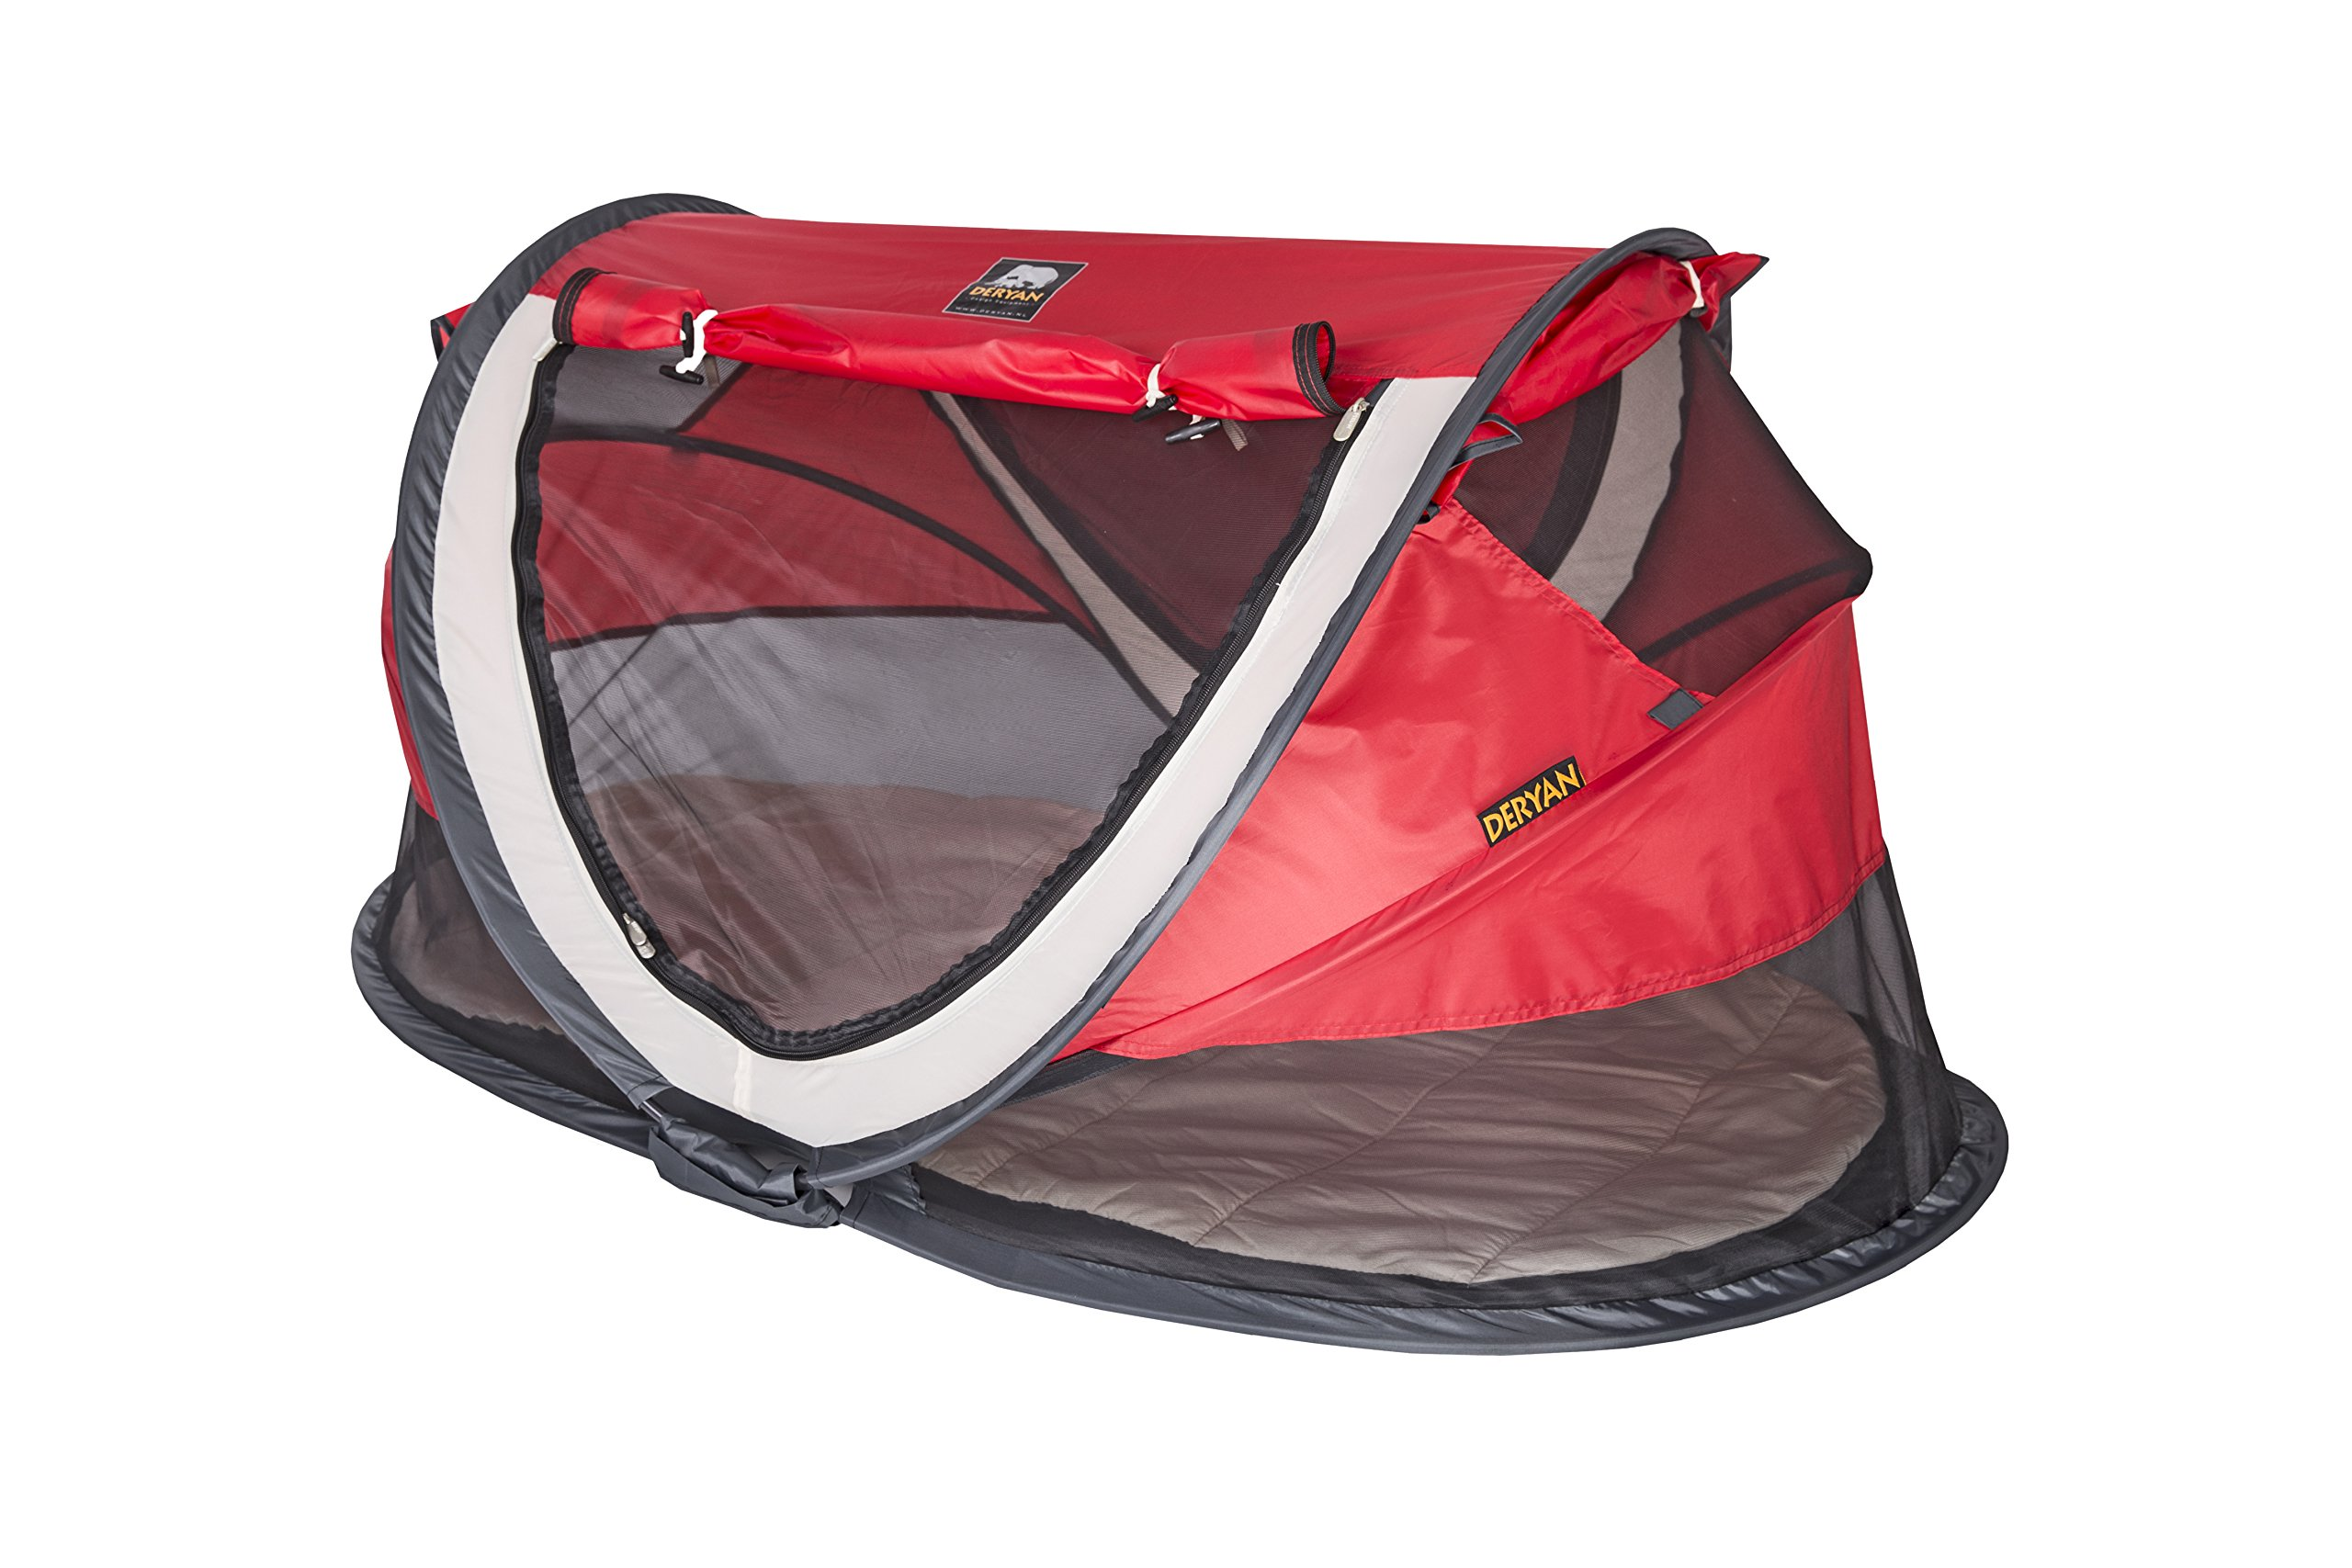 Travel Cot Peuter Luxe (Red) Deryan Perfect for the beach, the park or the back garden for playing in or for naps Can Pops up immediately, no poles or fiddly frames to put together. Lightweight and compact in its zip up bag 3